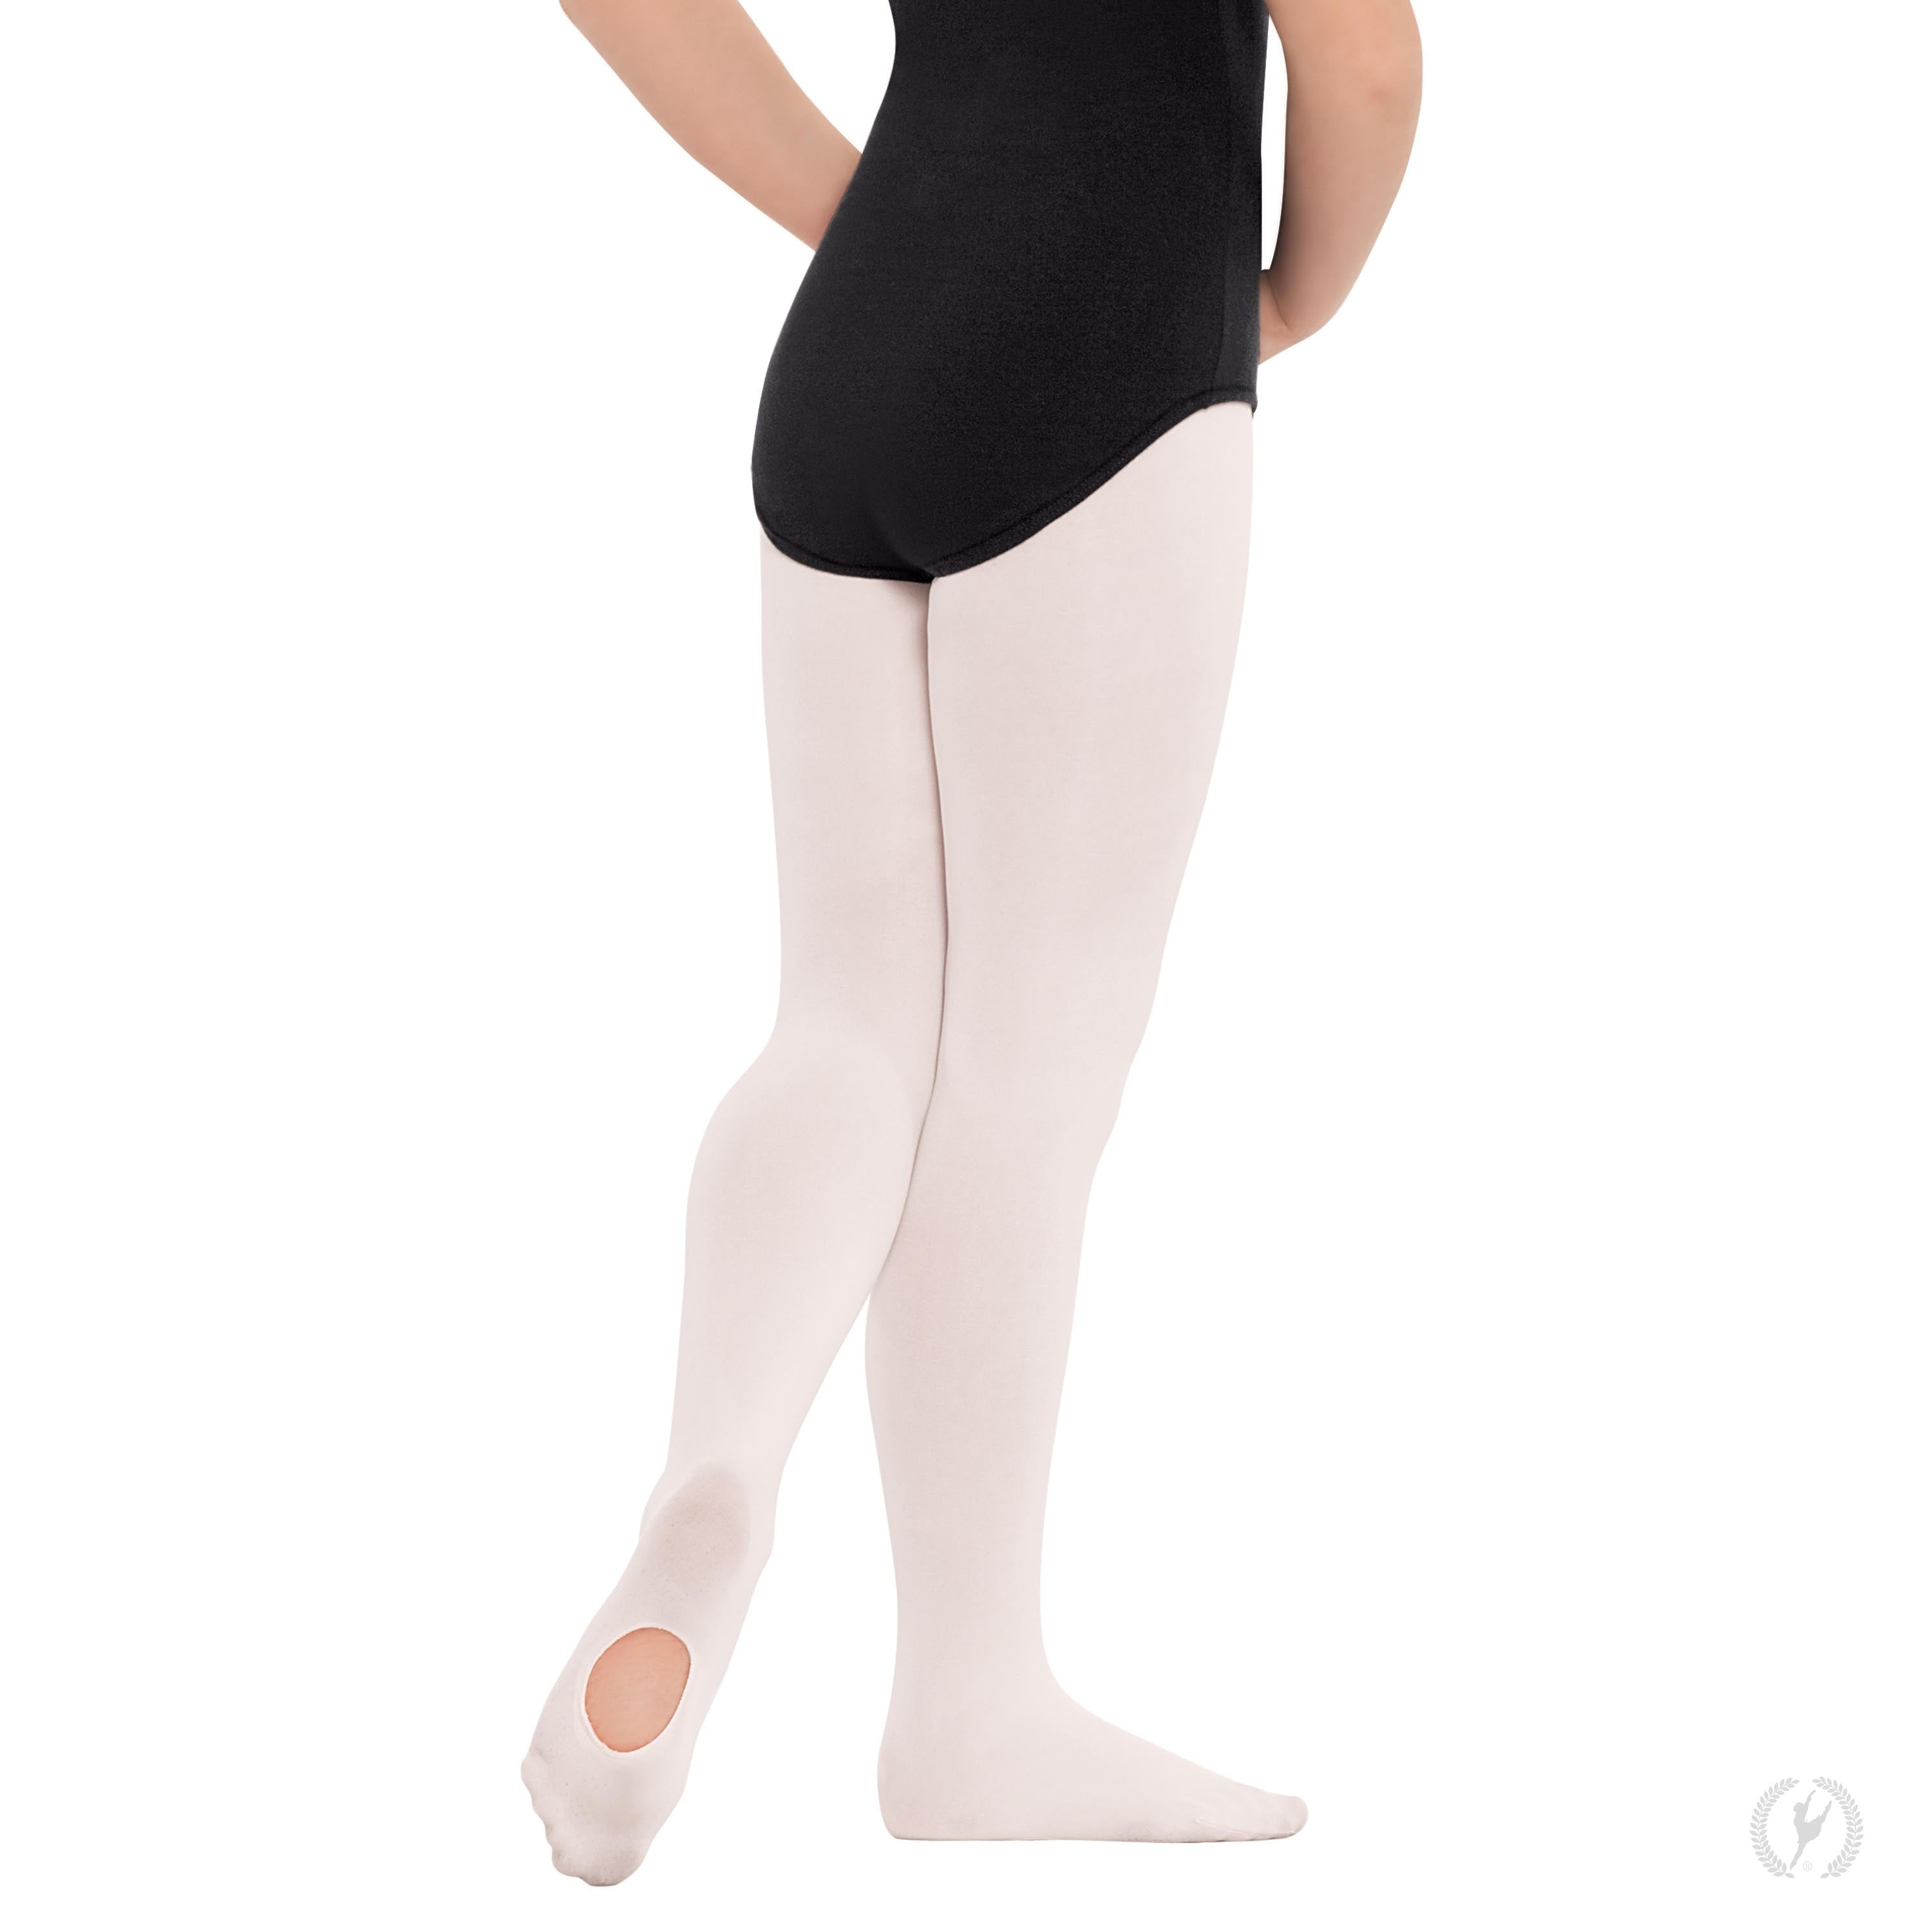 Eurotard Convertible Tights - 210